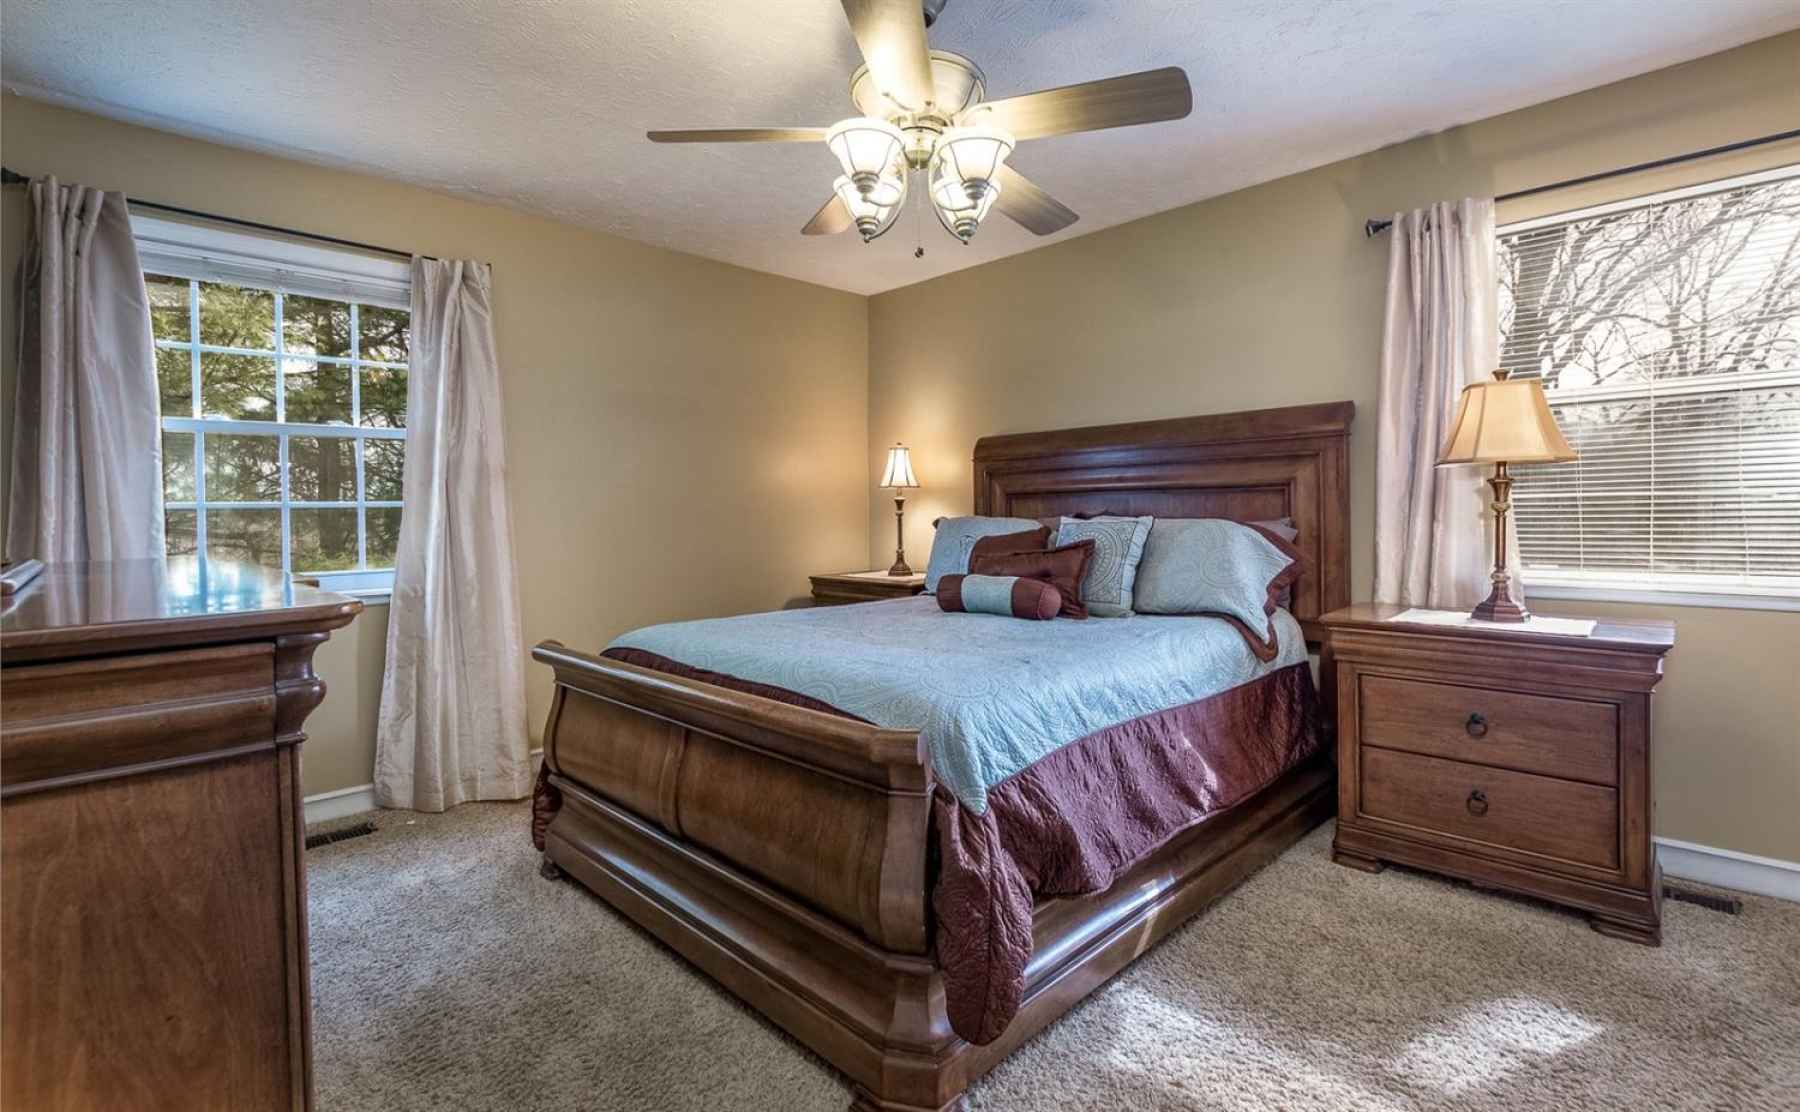 The master bedroom offers loads of natural sunlight